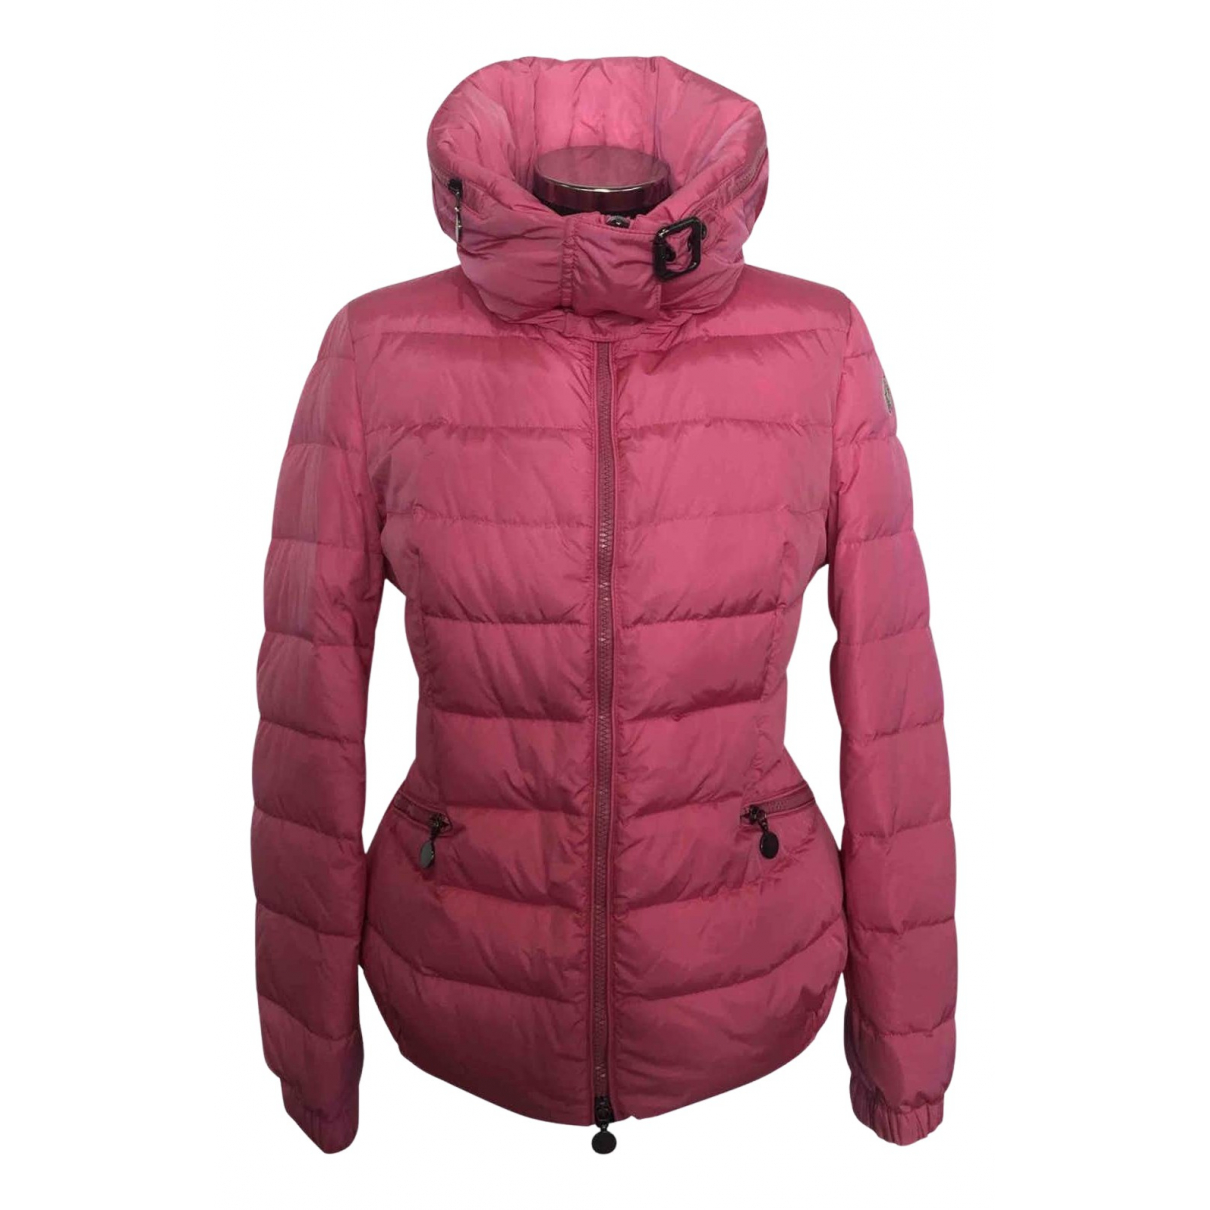 Moncler \N Kleid in  Rosa Synthetik